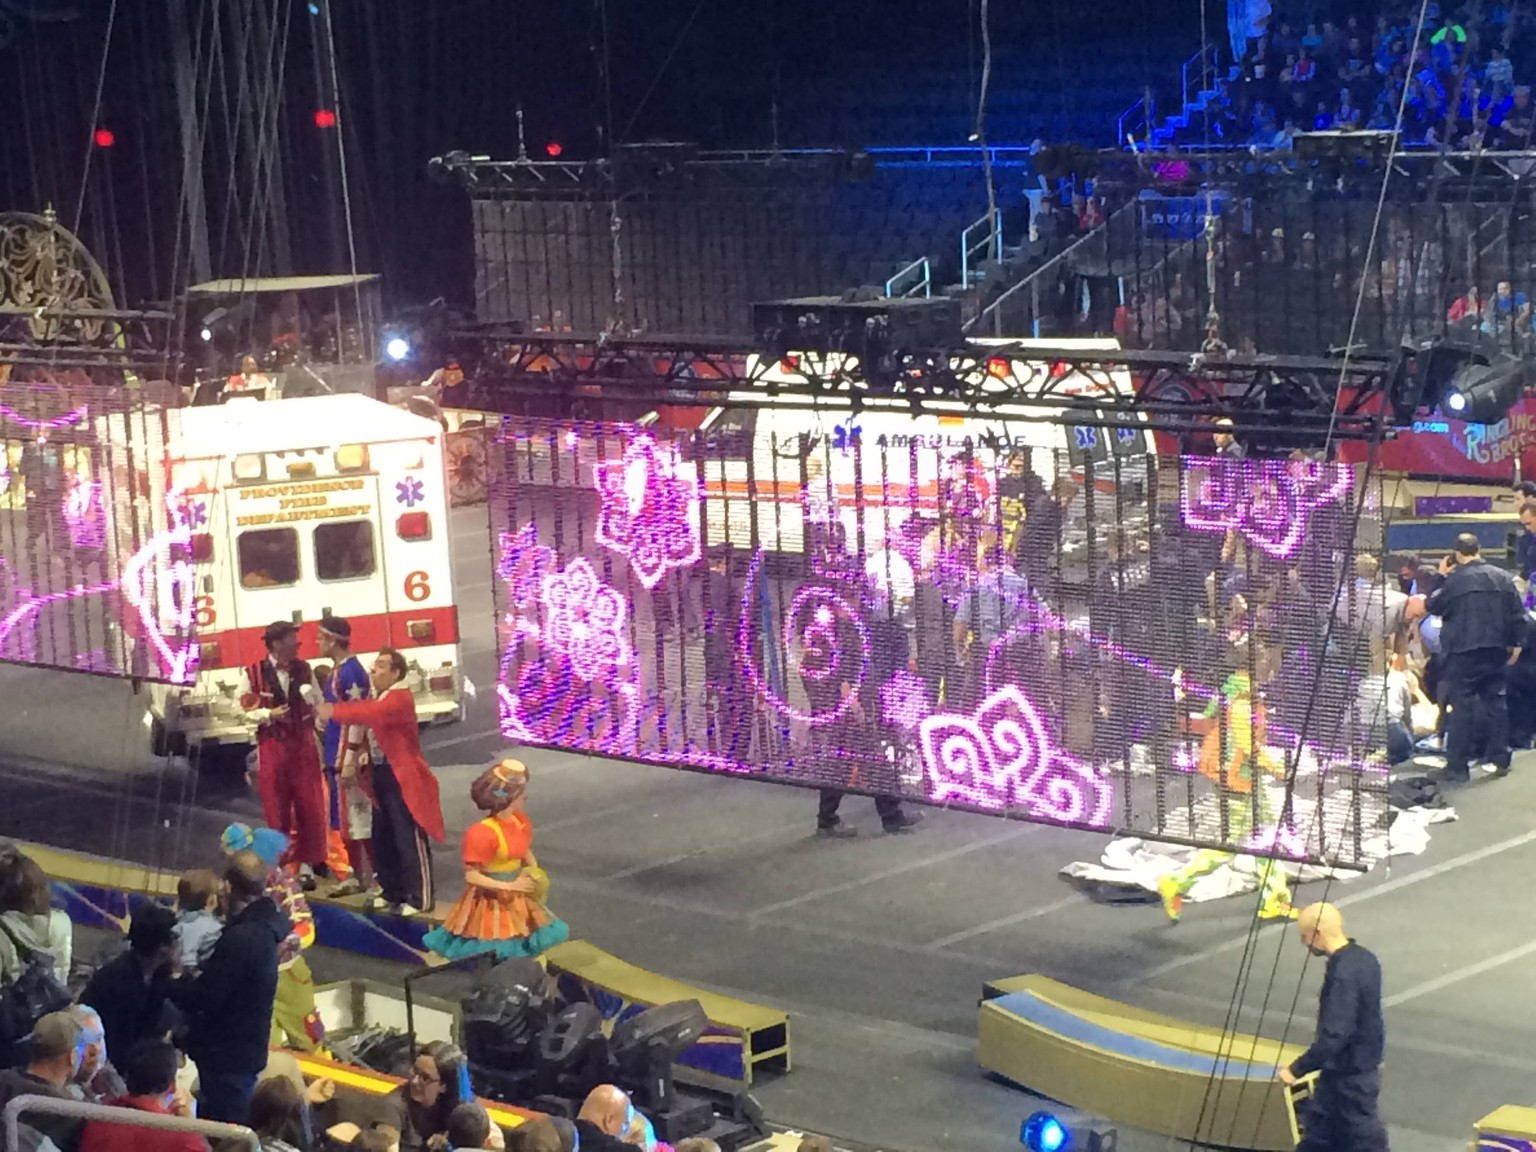 Emergency personnel attend to Ringling Bros. and Barnum & Bailey Circus performers who were injured when the scaffolding they were performing from collapsed in Providence, Rhode Island, May 4, 2014. A scaffolding collapsed during a circus performance injuring as many as 20 performers, nine of them critically, the Providence Fire Department said.  REUTERS/Aletha Wood  (UNITED STATES - Tags: DISASTER SOCIETY ENTERTAINMENT TPX IMAGES OF THE DAY)